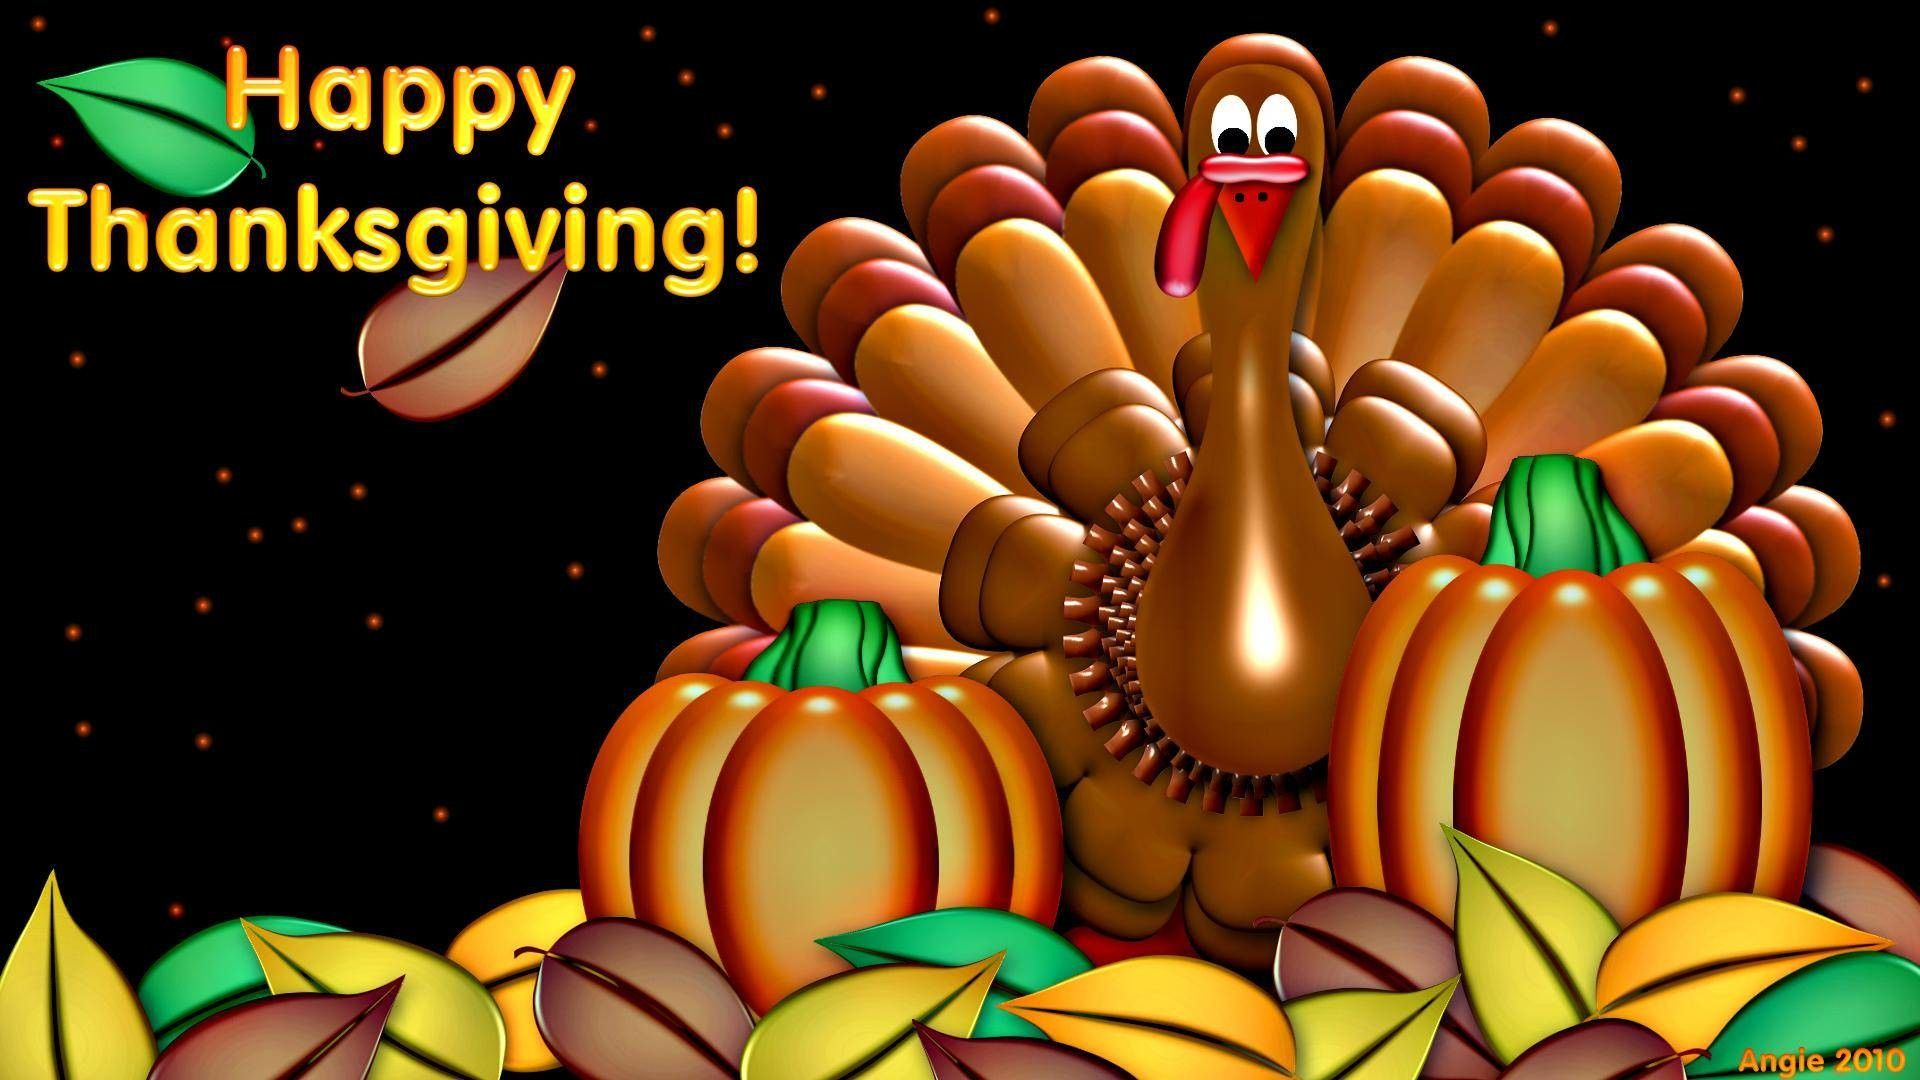 Funny Thanksgiving Wallpapers Free Thanksgiving Wallpapers